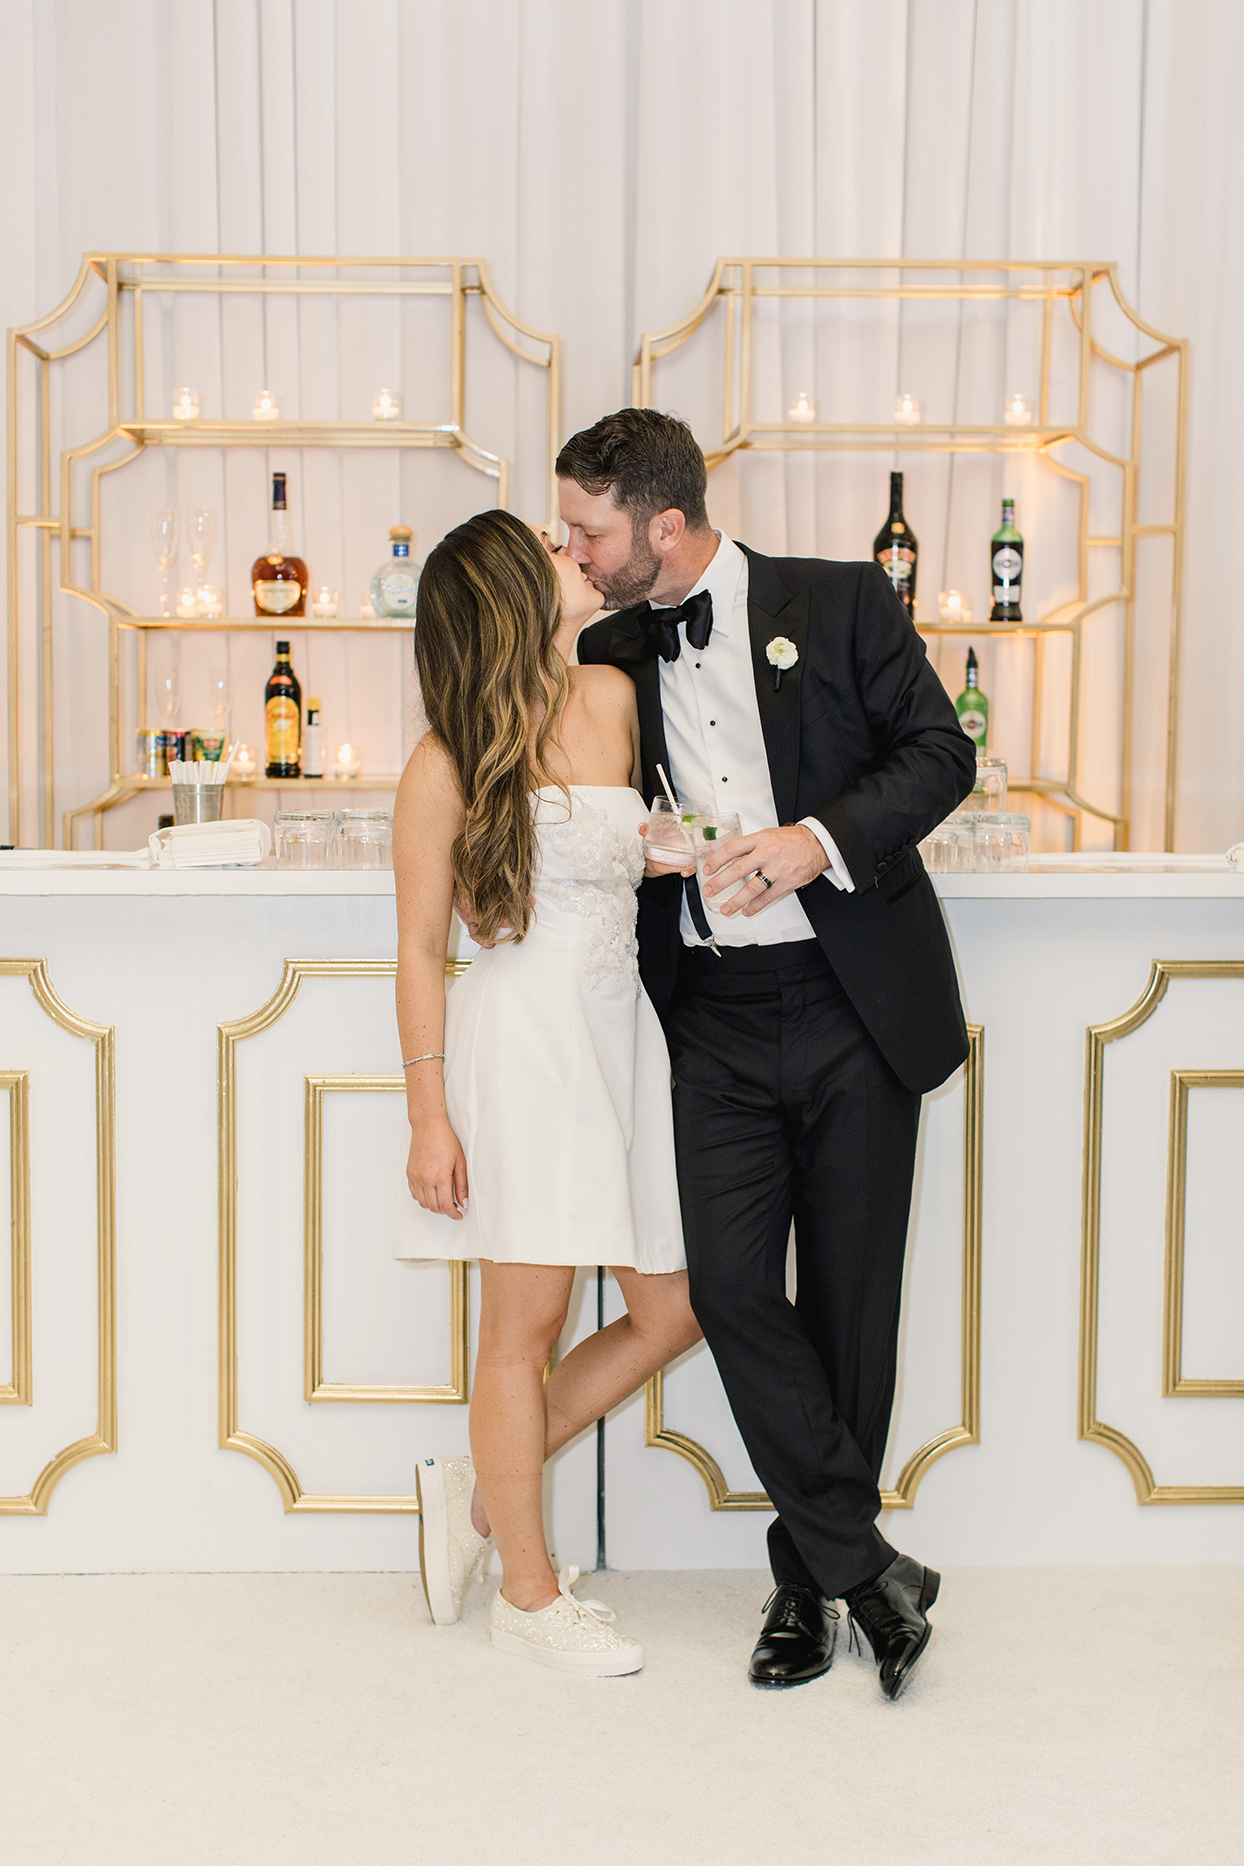 brittany brian wedding reception bride in short dress kissing groom at bar